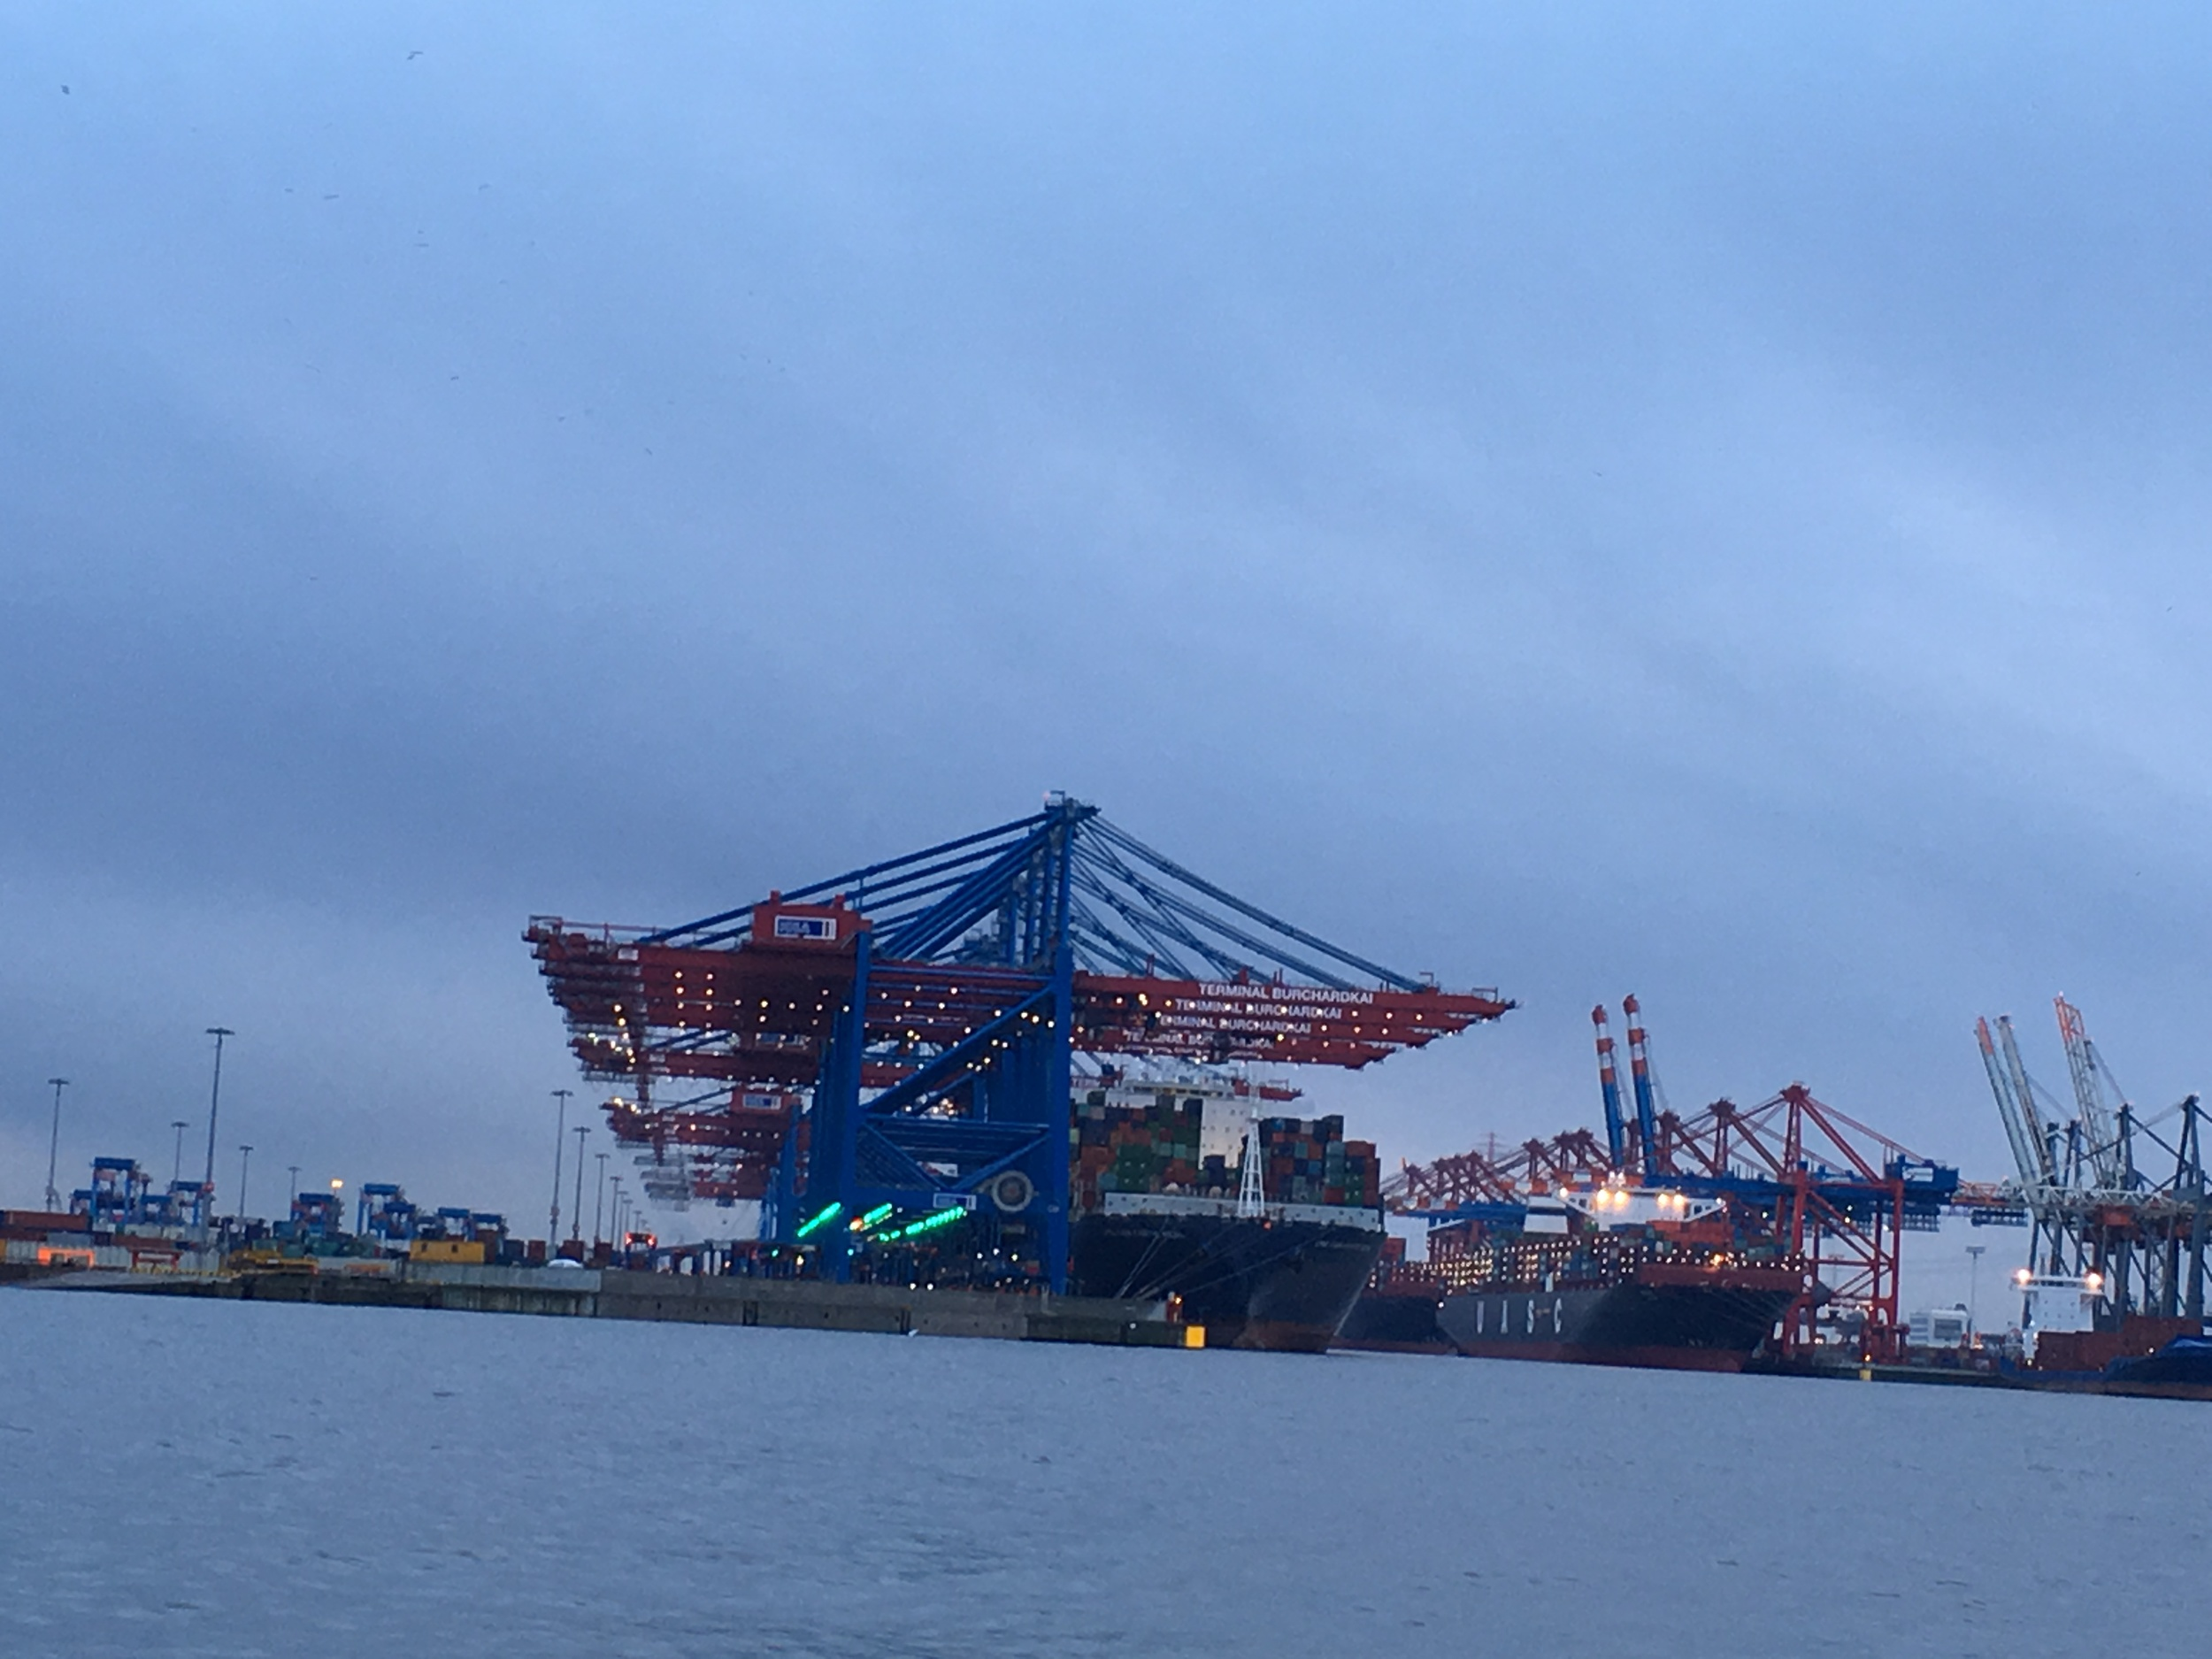 Access to the port of Hamburg is through the Elba River. Photo: Bruny Nieves